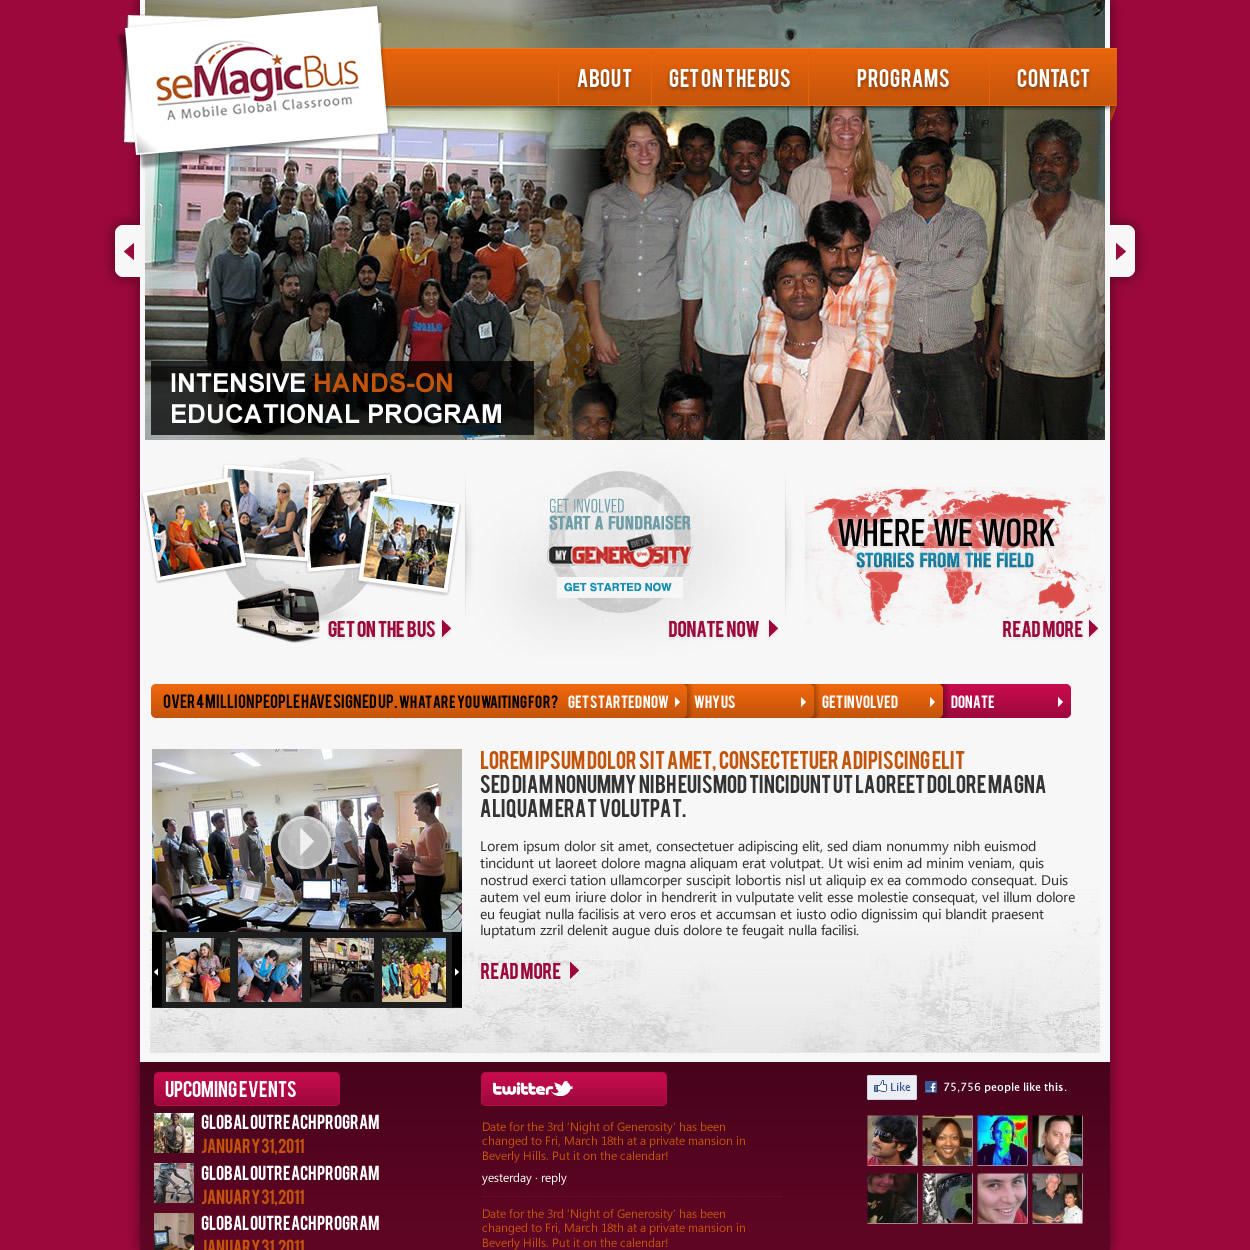 Web Page Design by johngabriel - Entry No. 46 in the Web Page Design Contest seMagicBus Website.